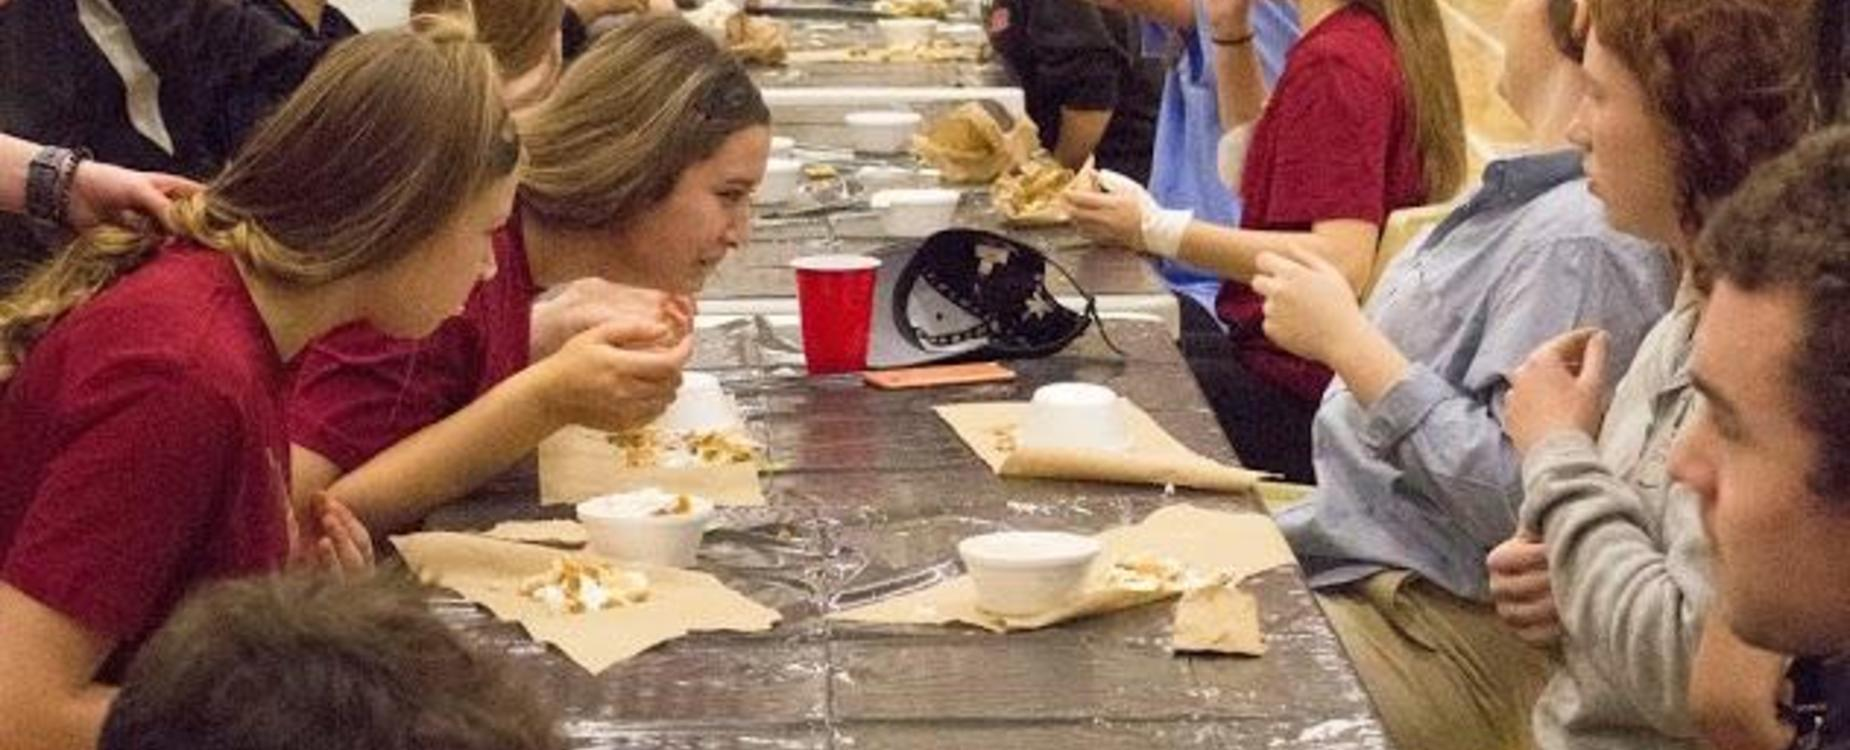 Students participating in a pie eating contest